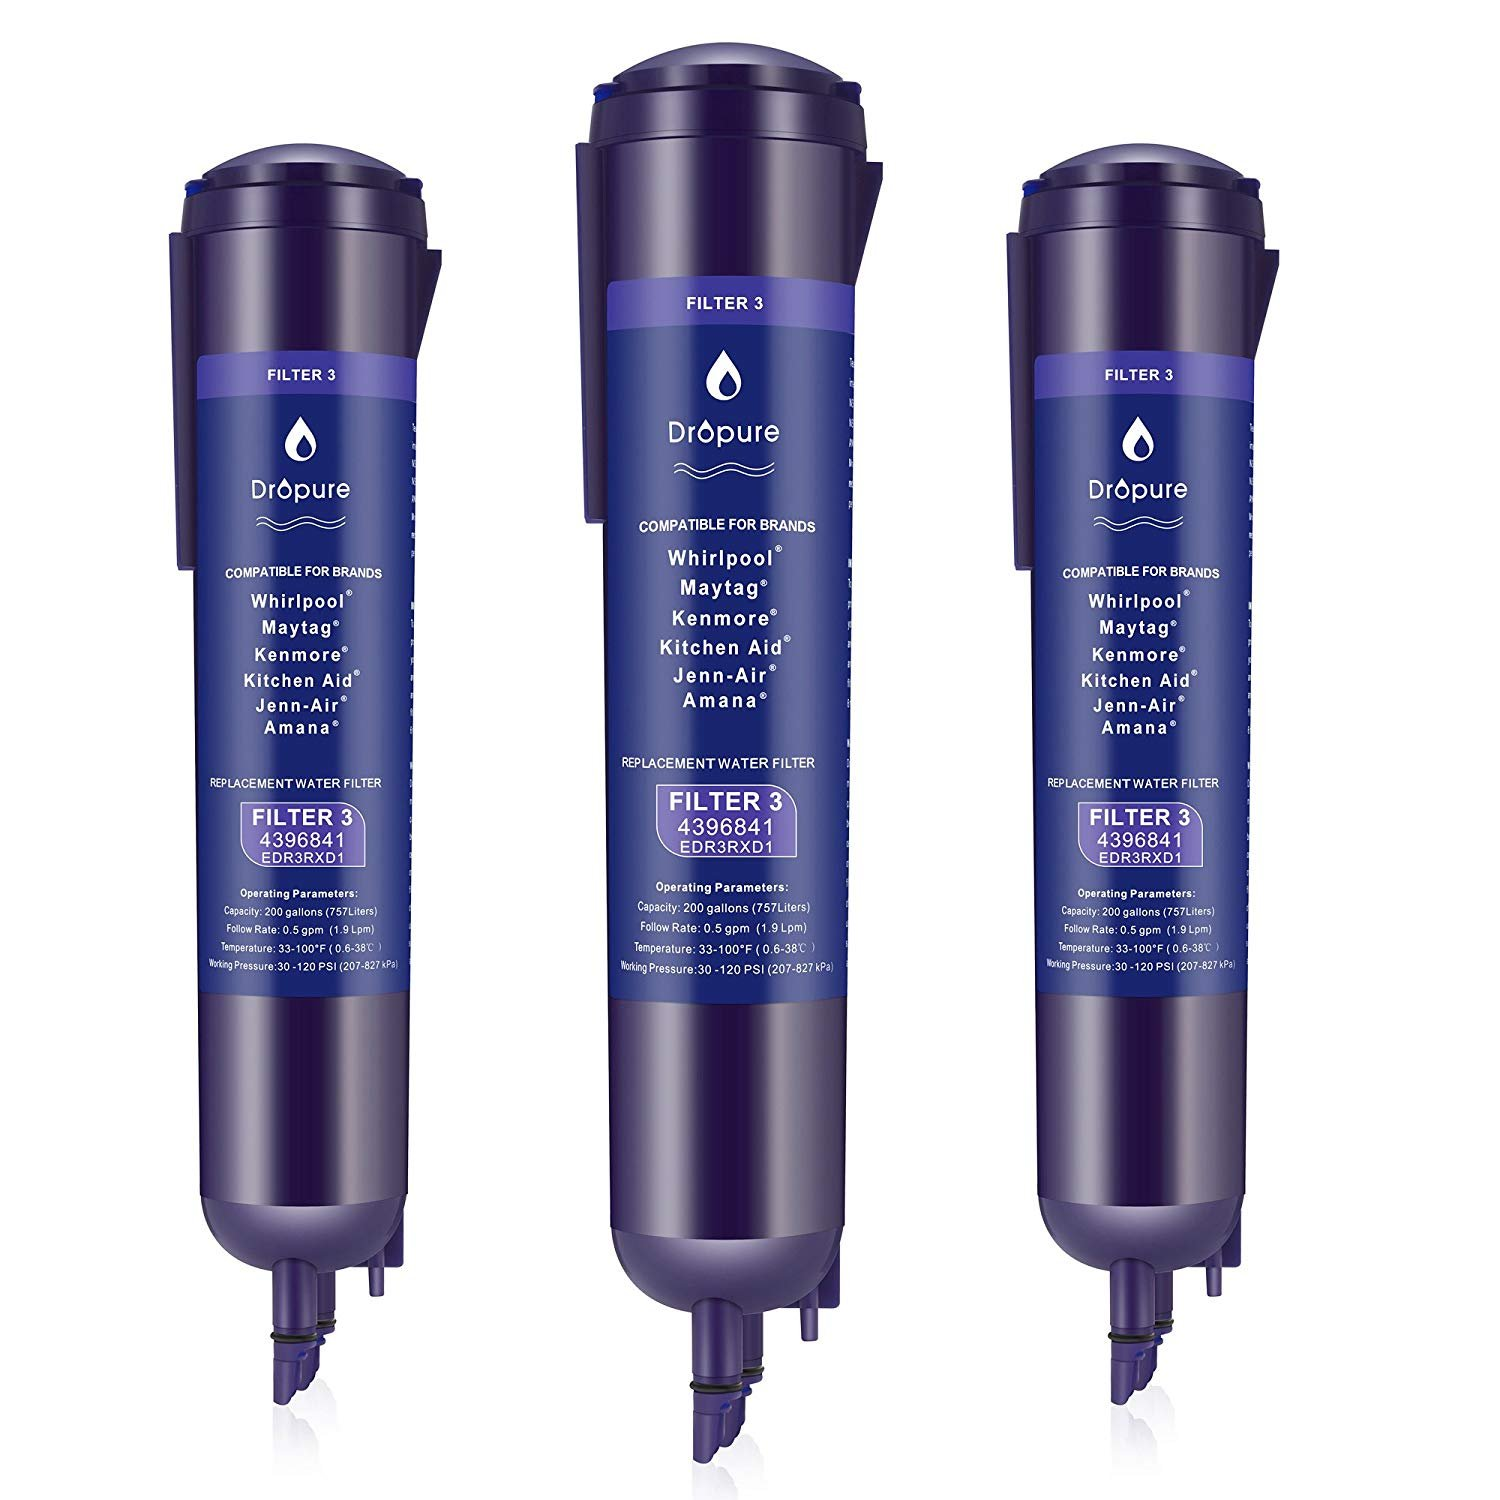 439684I Refrigerator Water Filter Compatible With P2RFWG2, EDR3RXDI, Filter 3, 4396 841,43967I0, Pur Water Filter, Kenmore 46-9030, 46-9083